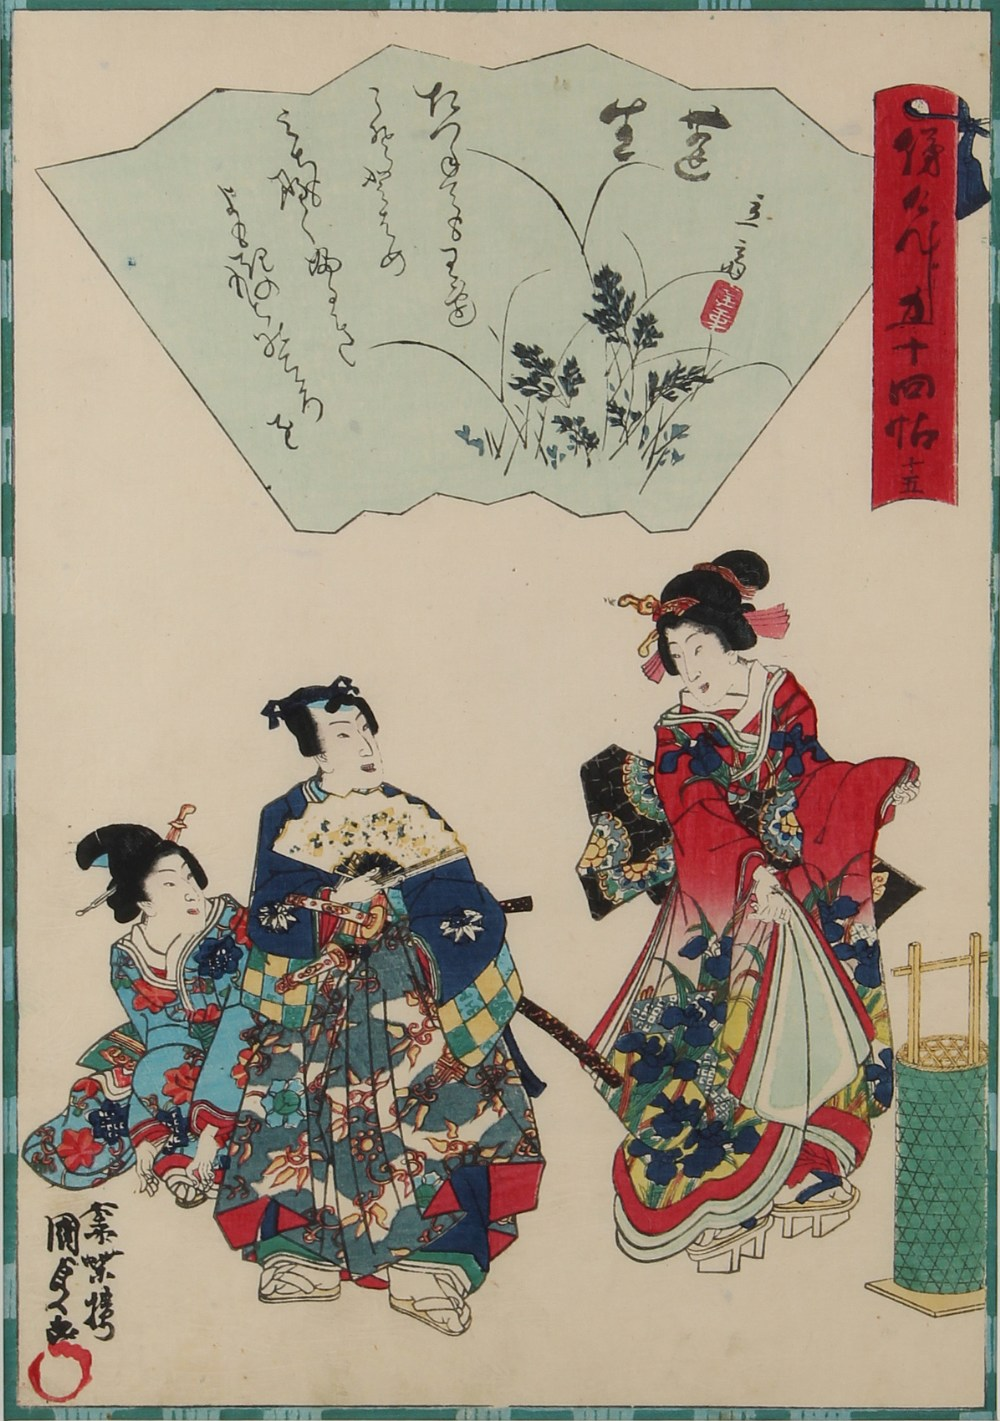 A collection of Japanese woodblock prints - Toyokuni IV Utagawa (1823-1880) - Yomogiu (Wasteland),